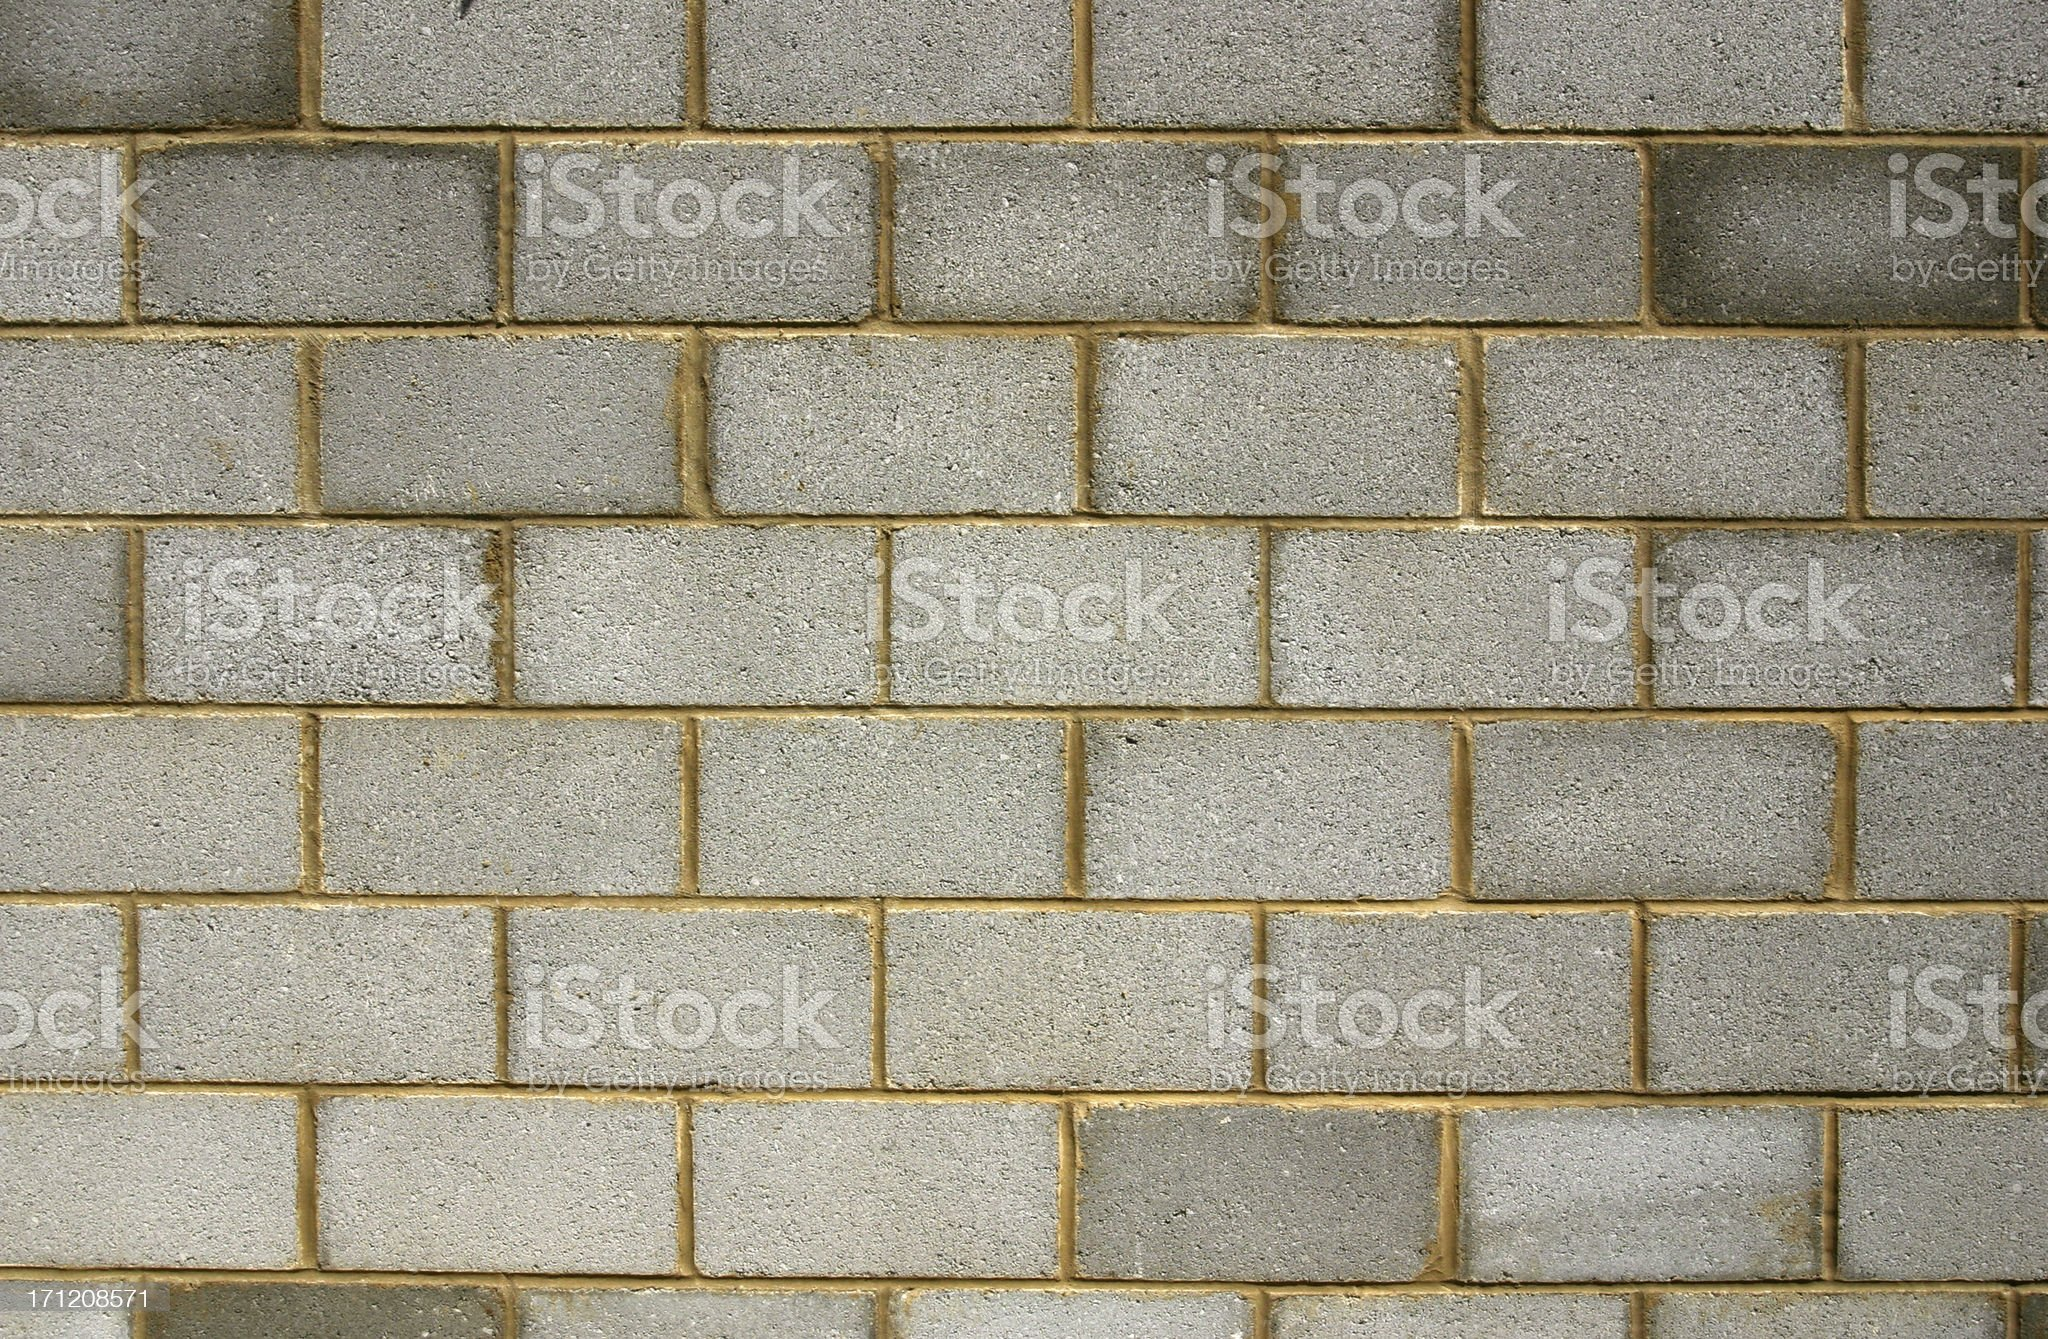 cemented wall building blocks royalty-free stock photo